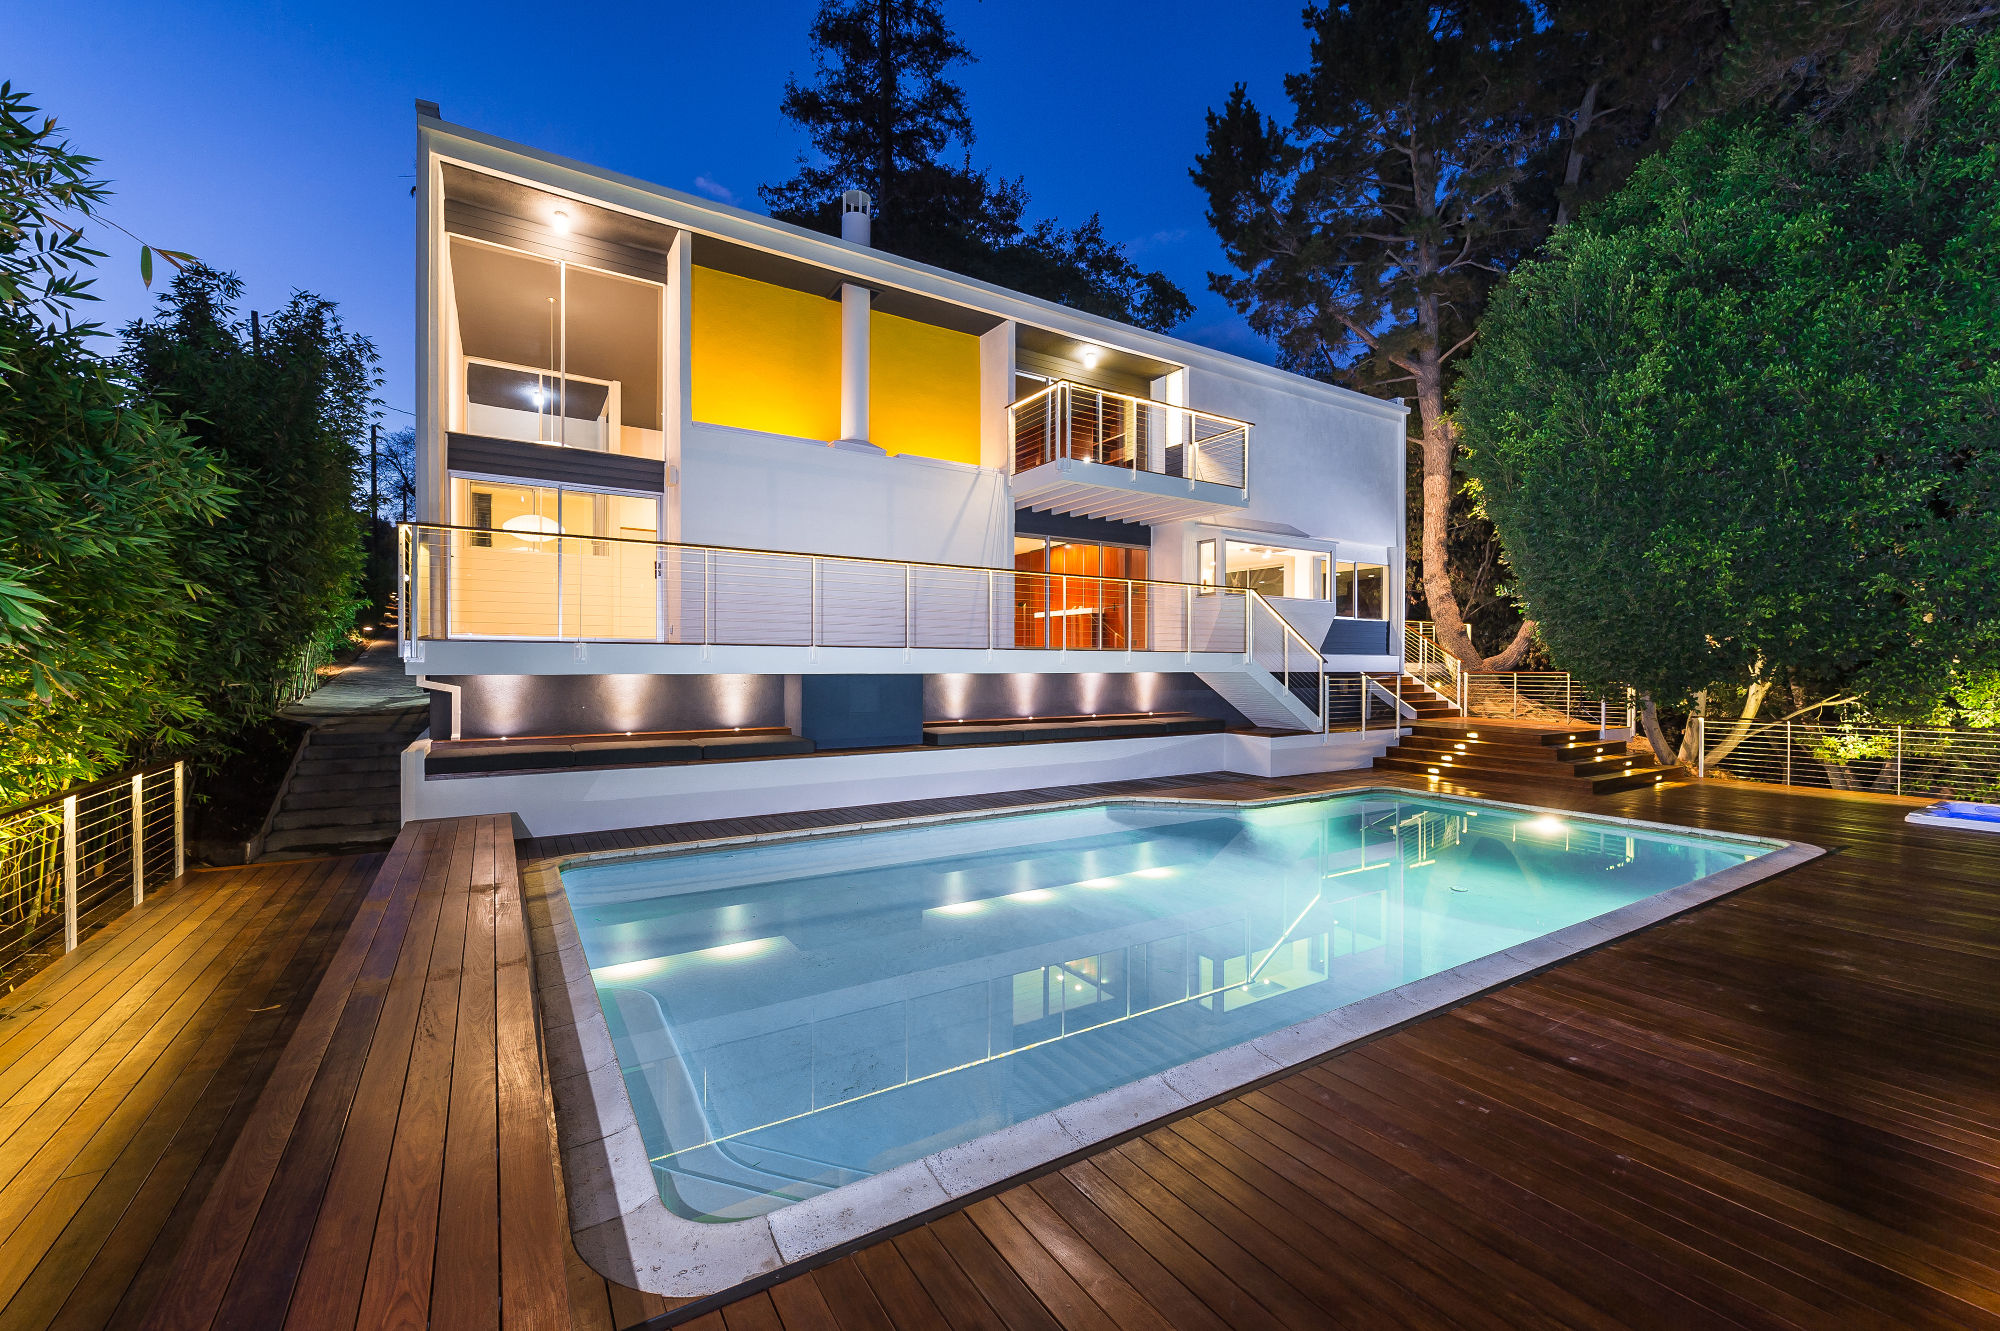 Historic renovation of Harlamb Georgescu home in Brentwood, Los Angeles, CA